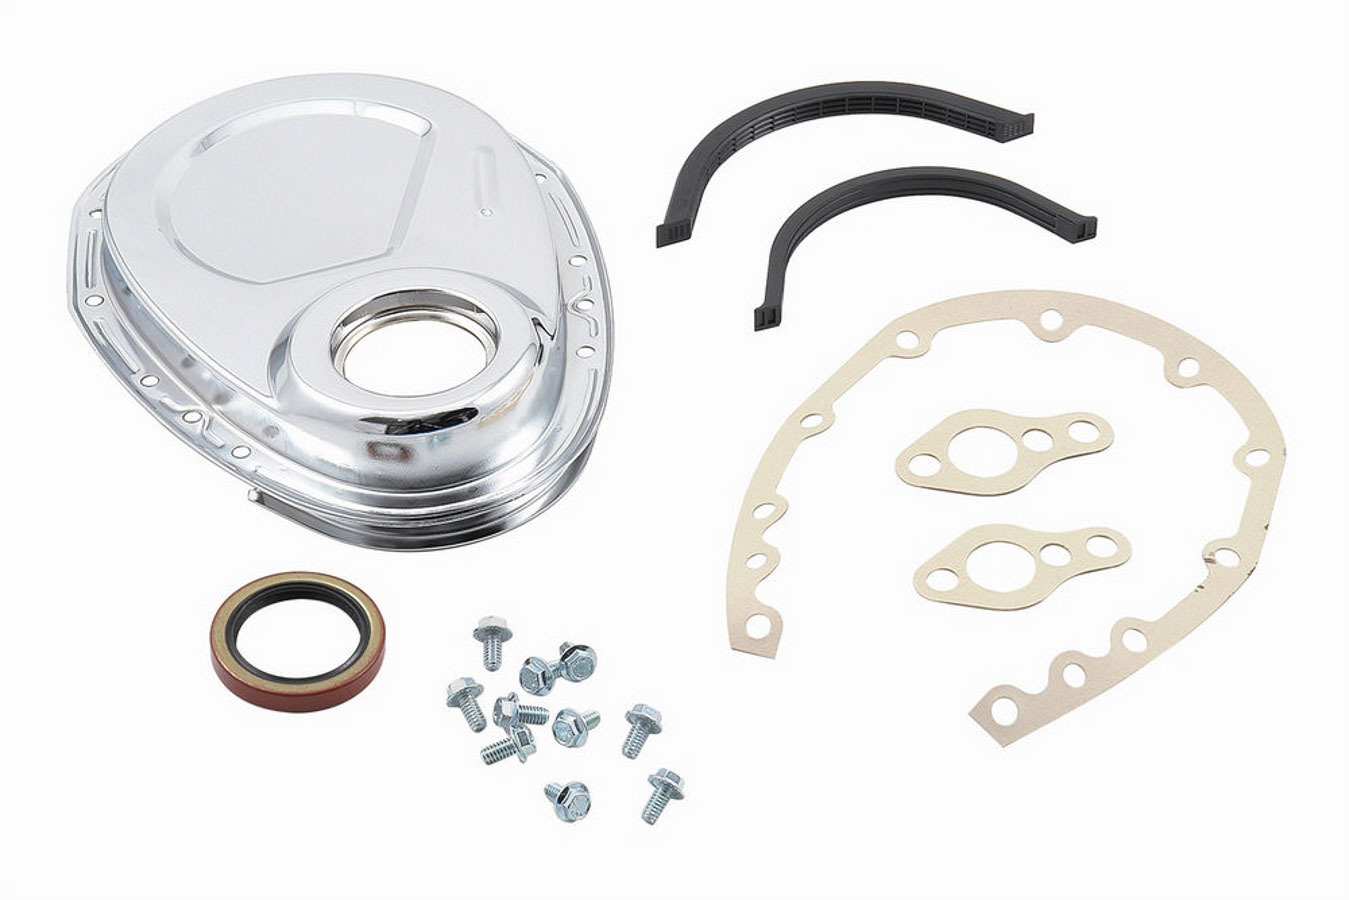 Mr Gasket 4590 Timing Cover, 1 Piece, Gaskets / Hardware / Seal Included, Steel, Chrome, Small Block Chevy / GM V6, Each